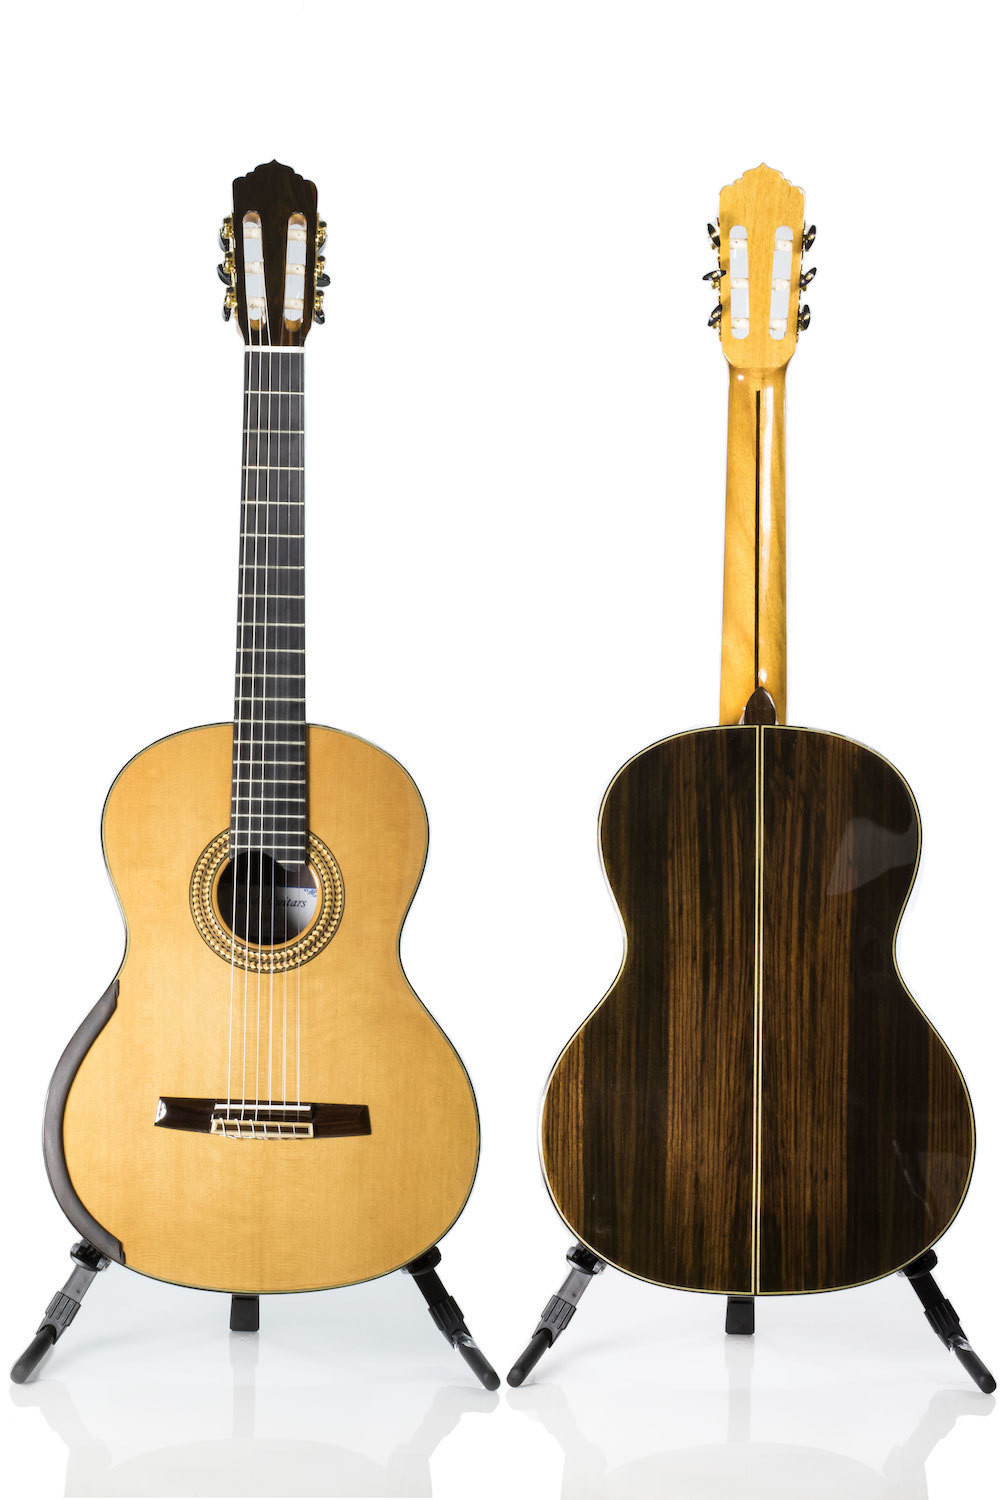 Calido Soloist - Left Handed - All Solid Wood - Cedar Top, Indian Rosewood Back/Sides - Classical Guitar